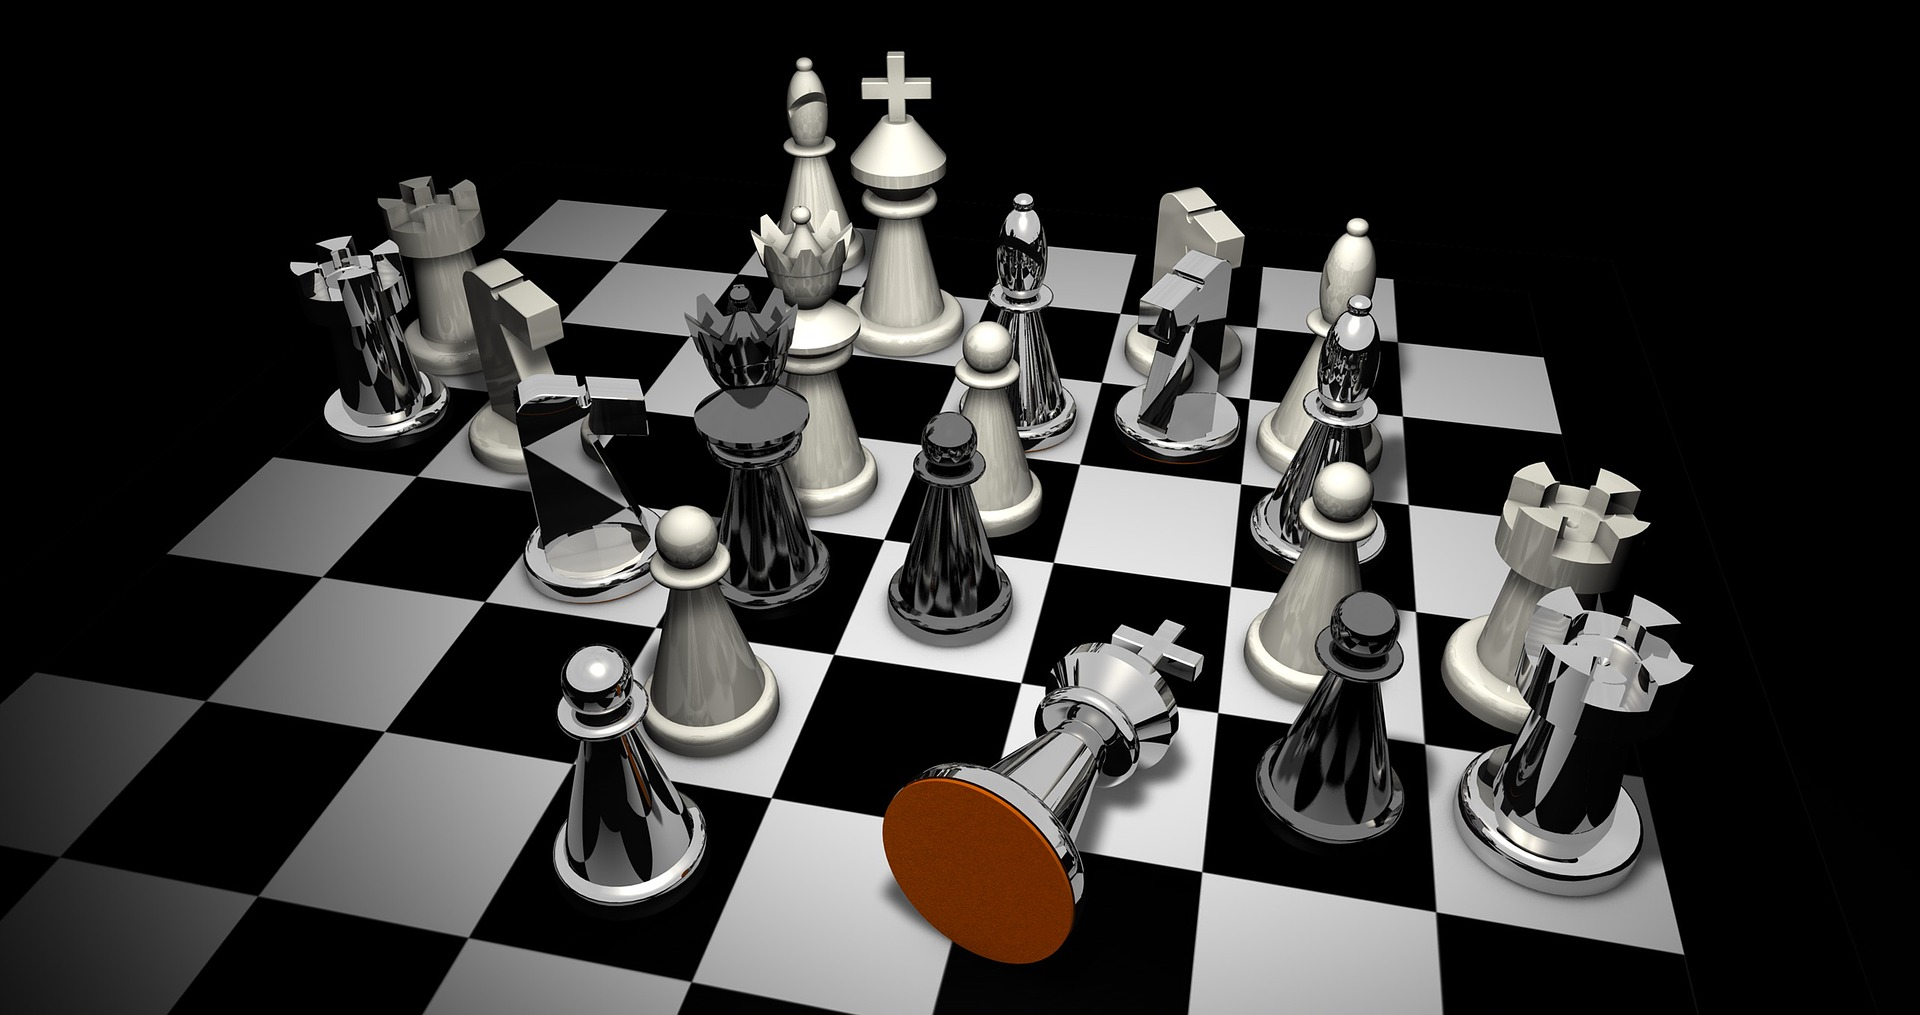 Marketing Strategy - Chess Checkmate